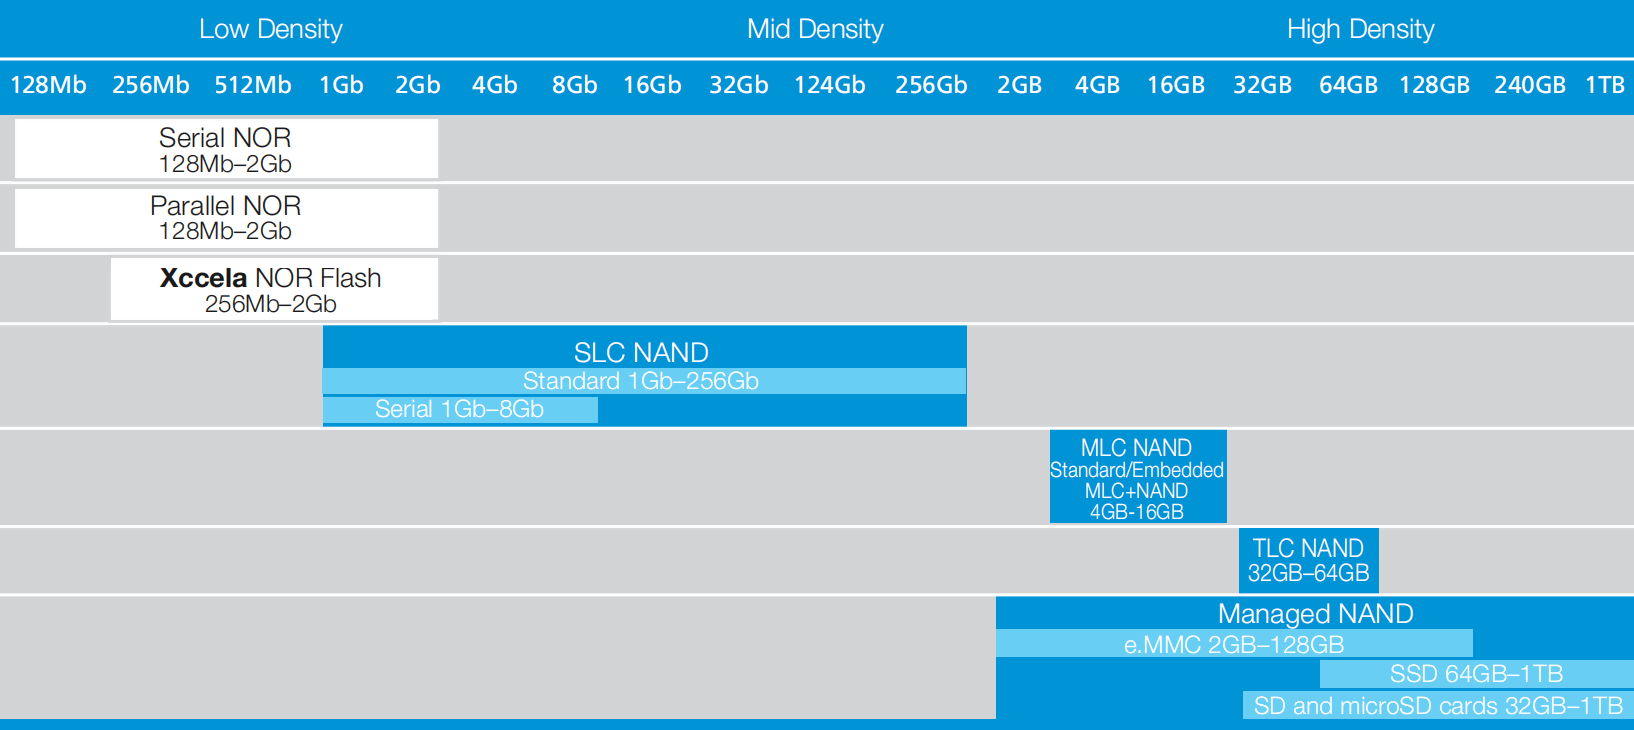 NOR & NAND Flash Density